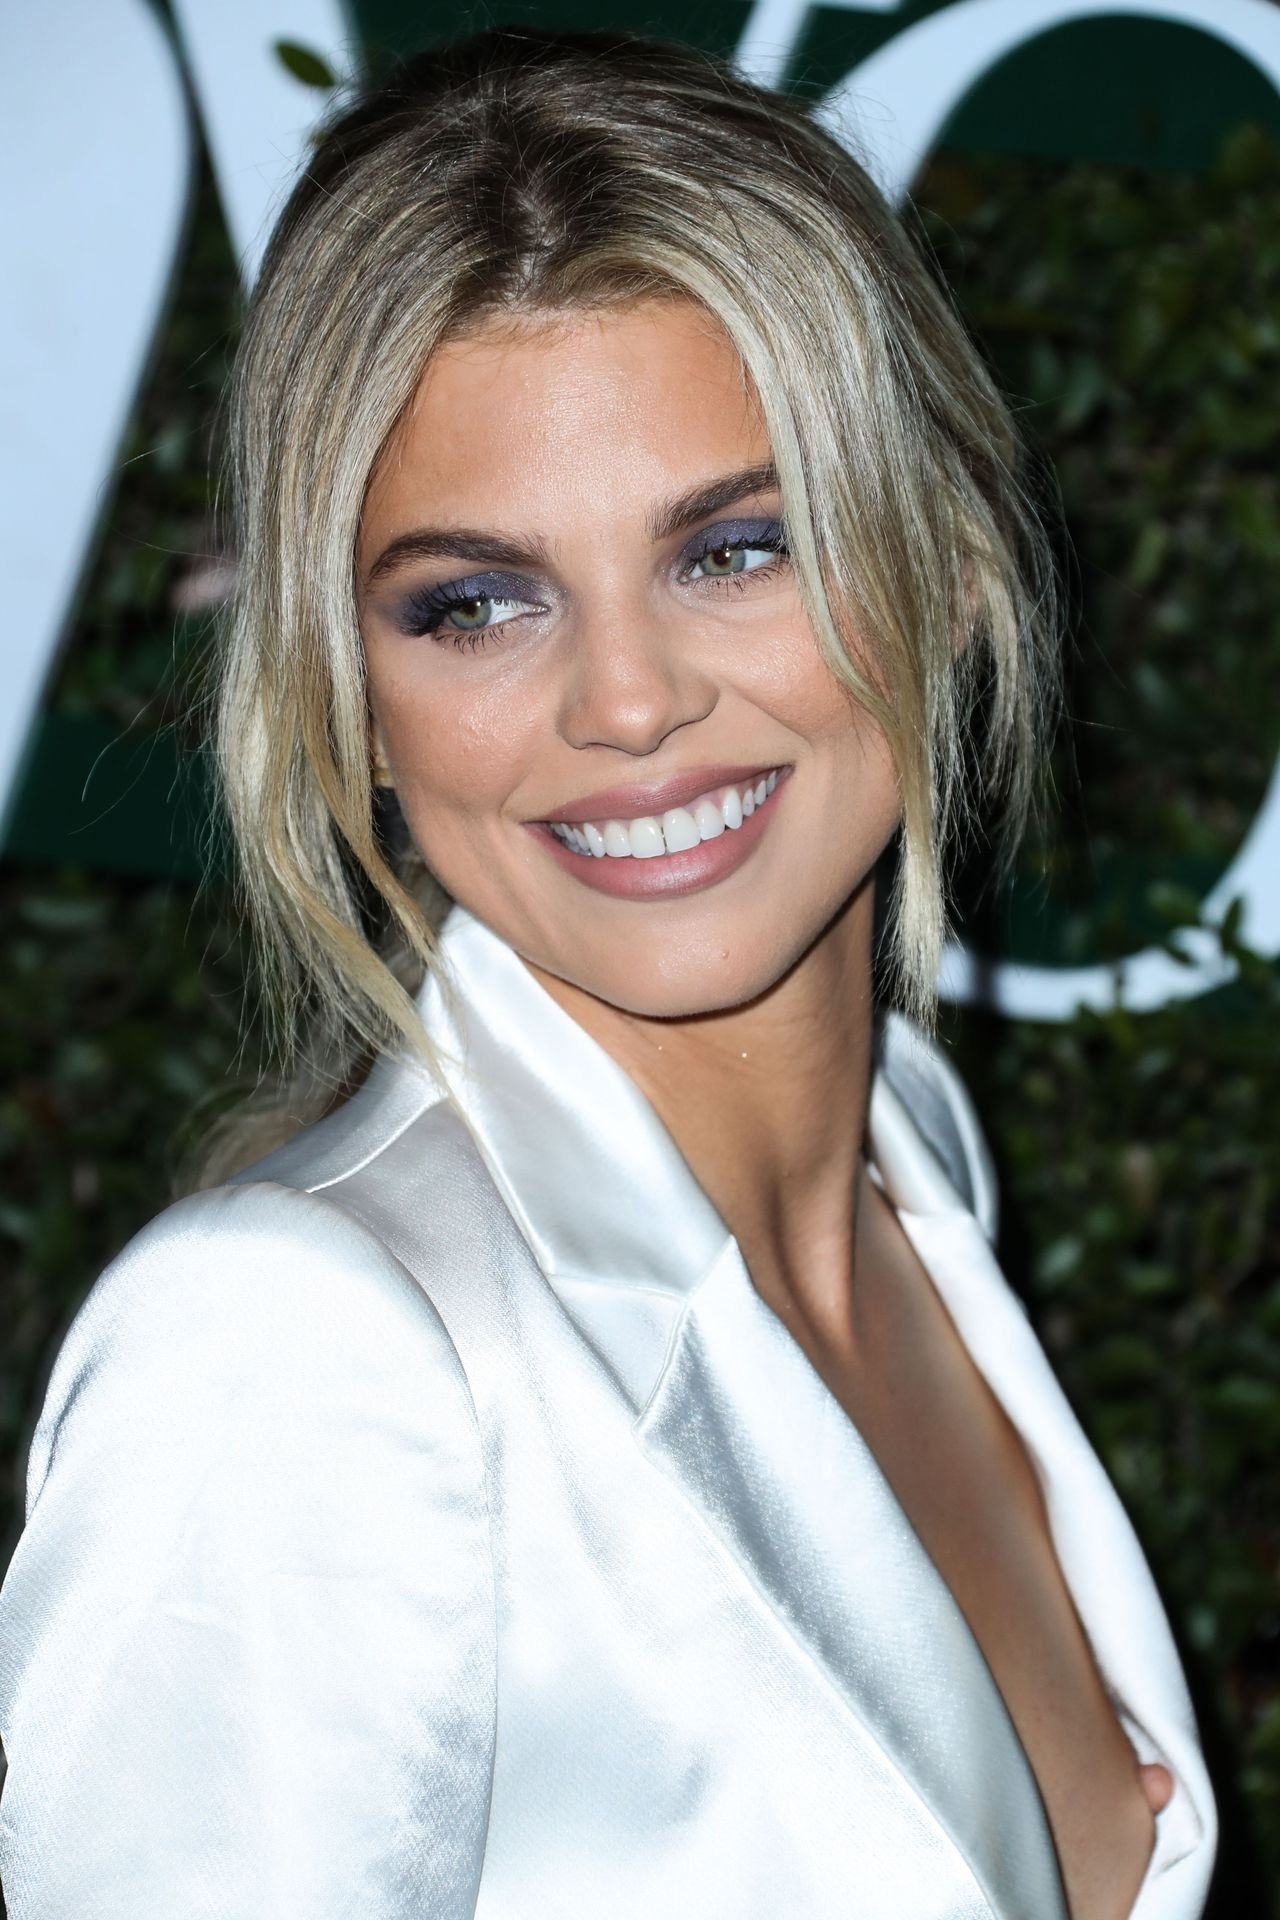 AnnaLynne McCord Oops Nipple Slip Moment - Thefappening.link